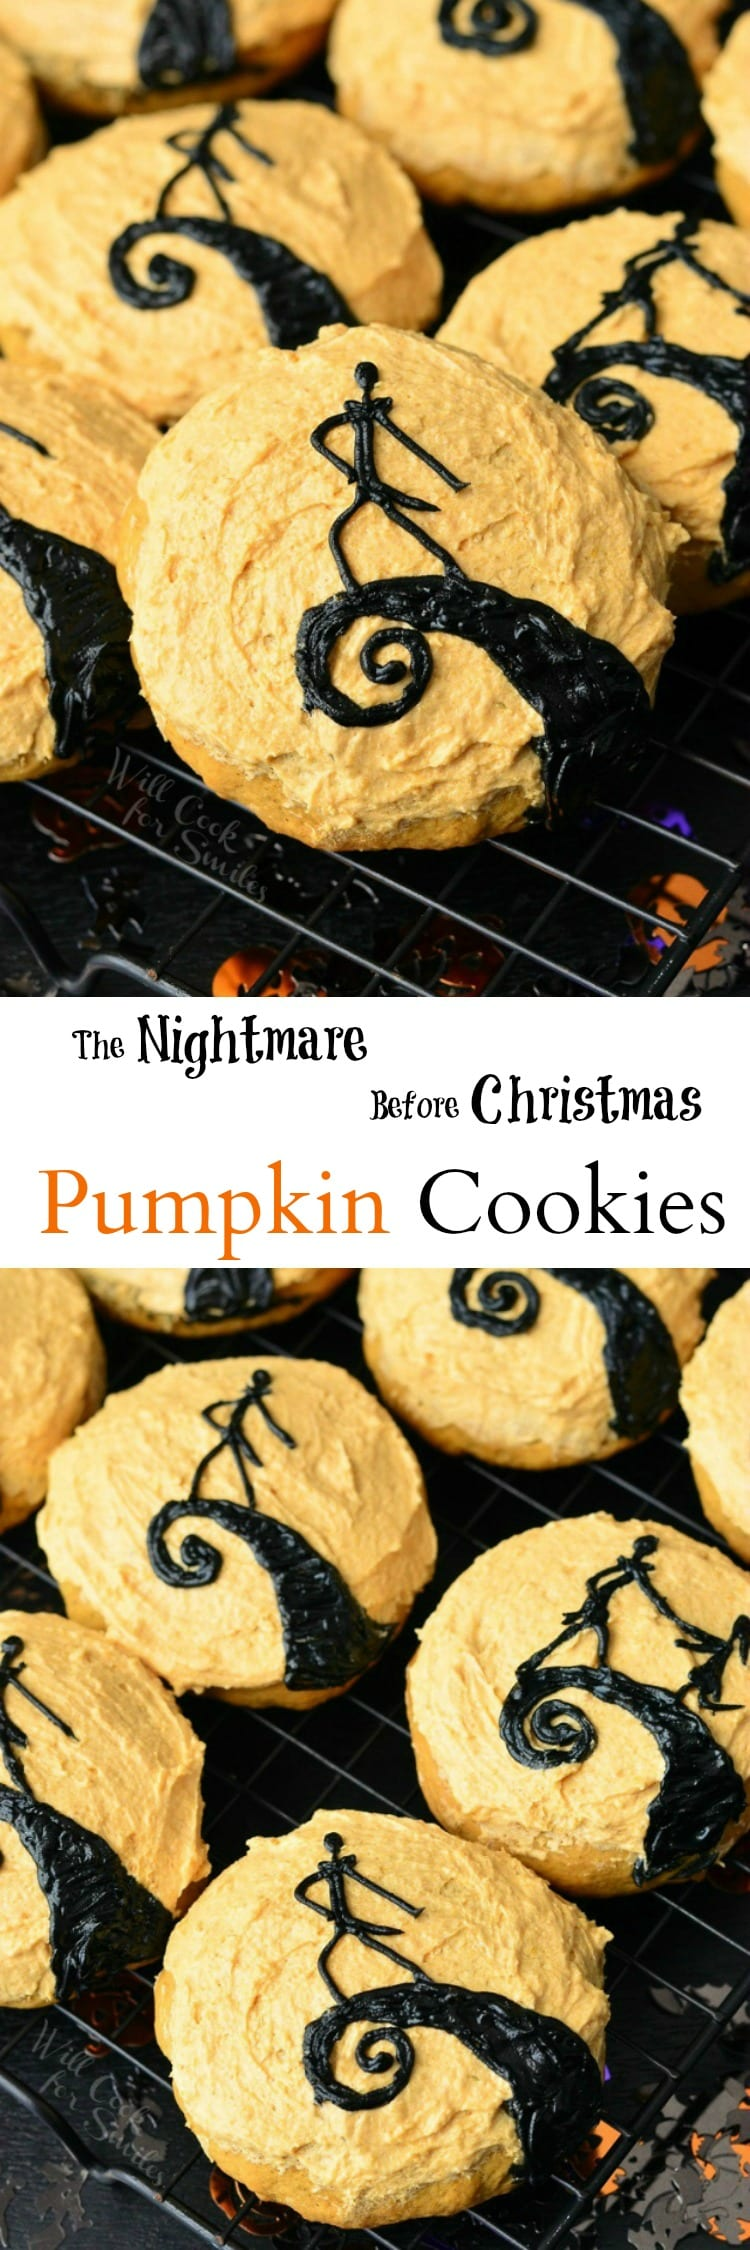 the nightmare before christmas pumpkin cookies fun cookies to serve for halloween parties to all